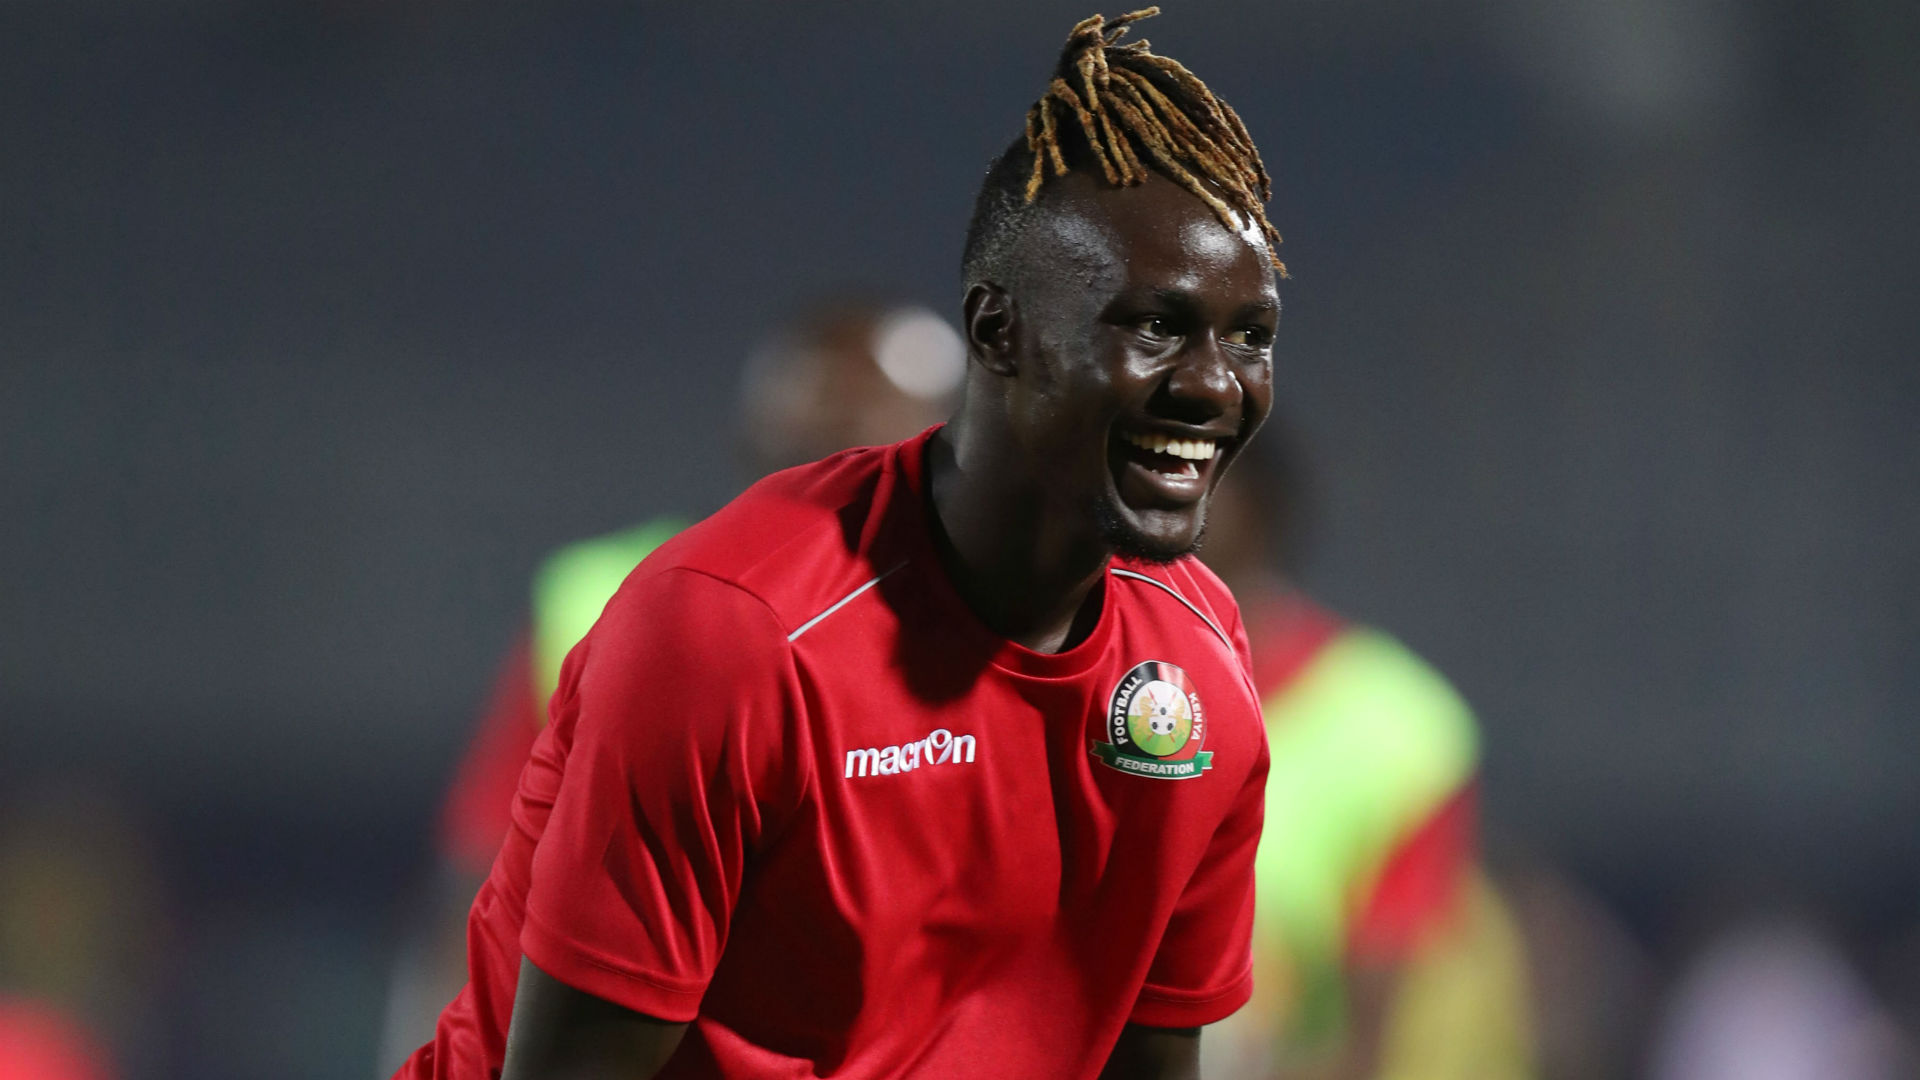 Afcon 2021 Qualifiers: Avire pulls out of Harambee Stars squad for Egypt clash